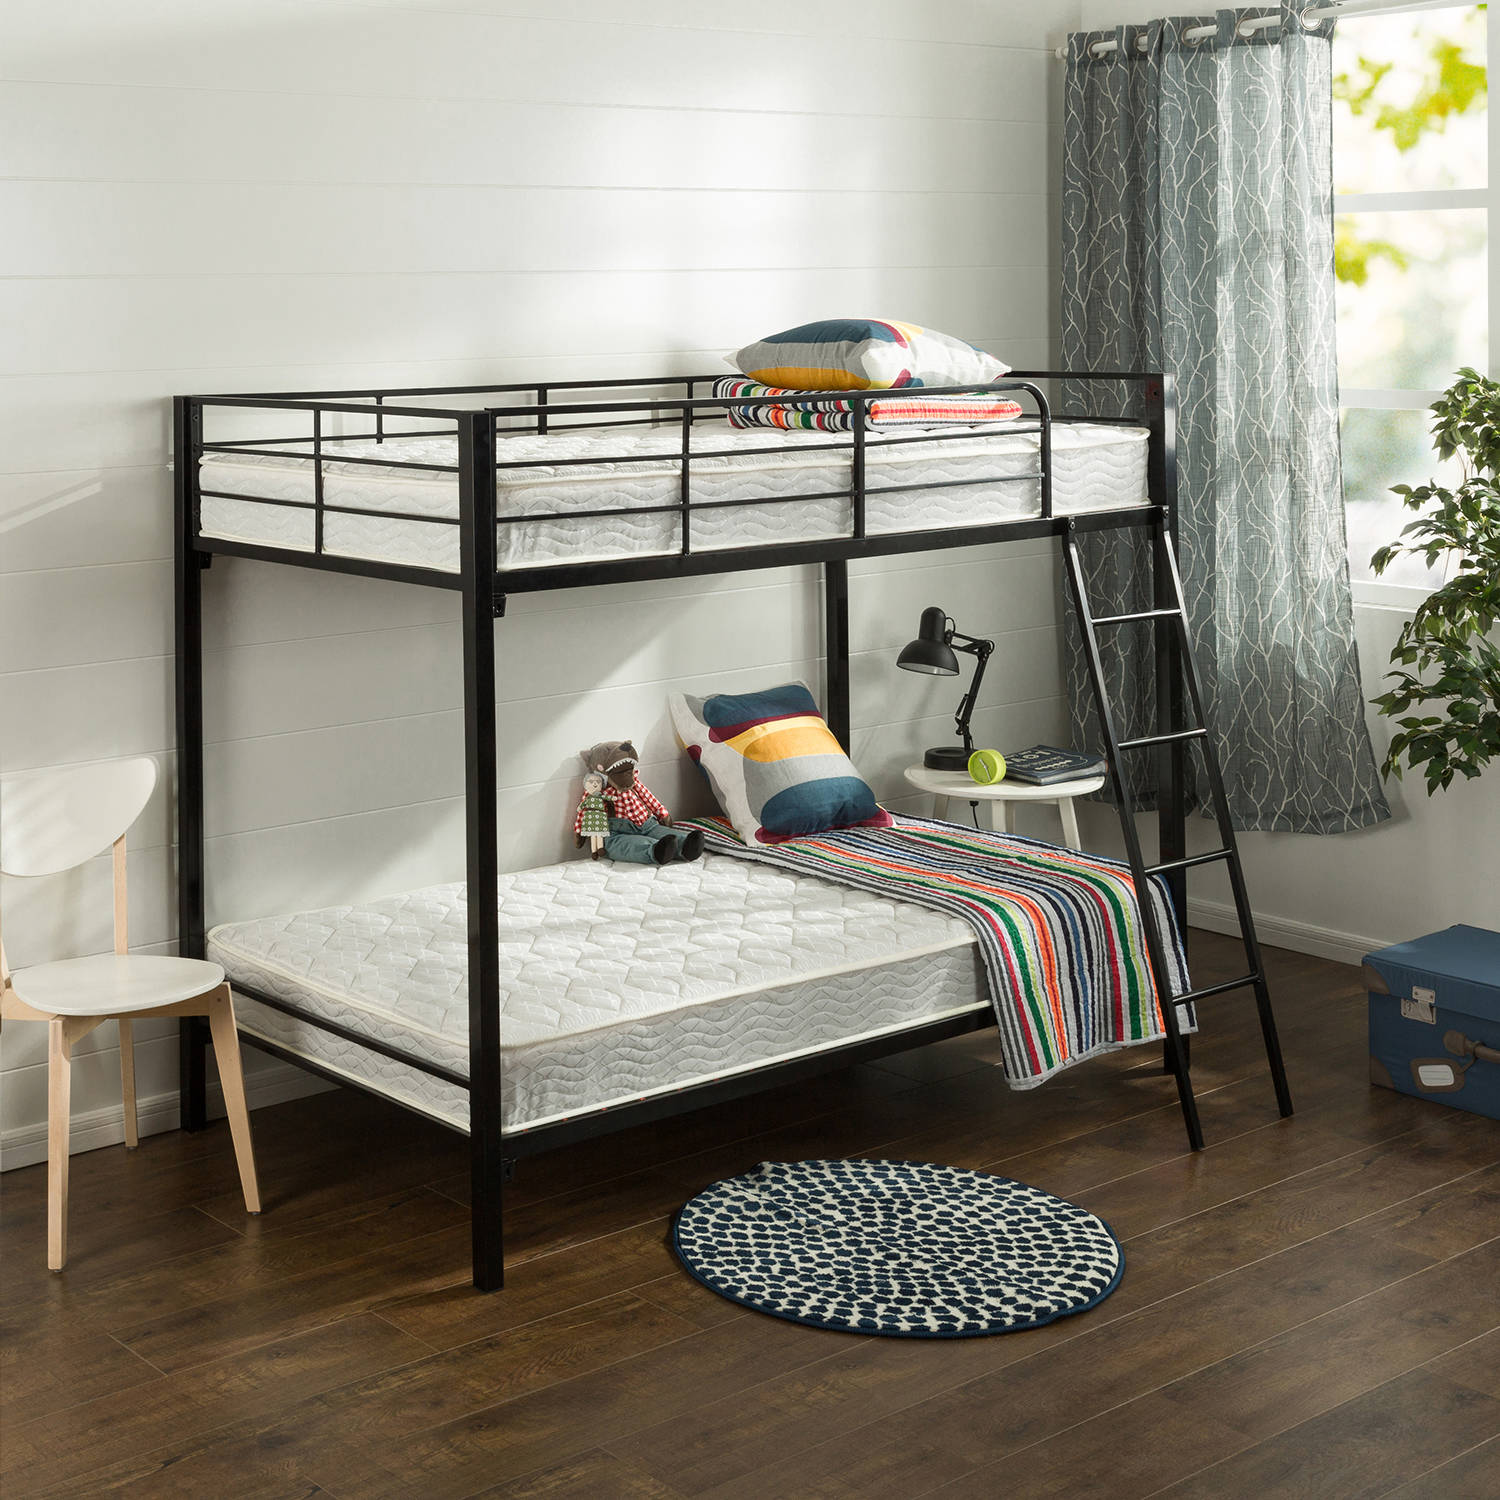 "Slumber 1 Comfort 6"" Twin Pack Bunk Bed Spring Mattress, Twin over Twin"